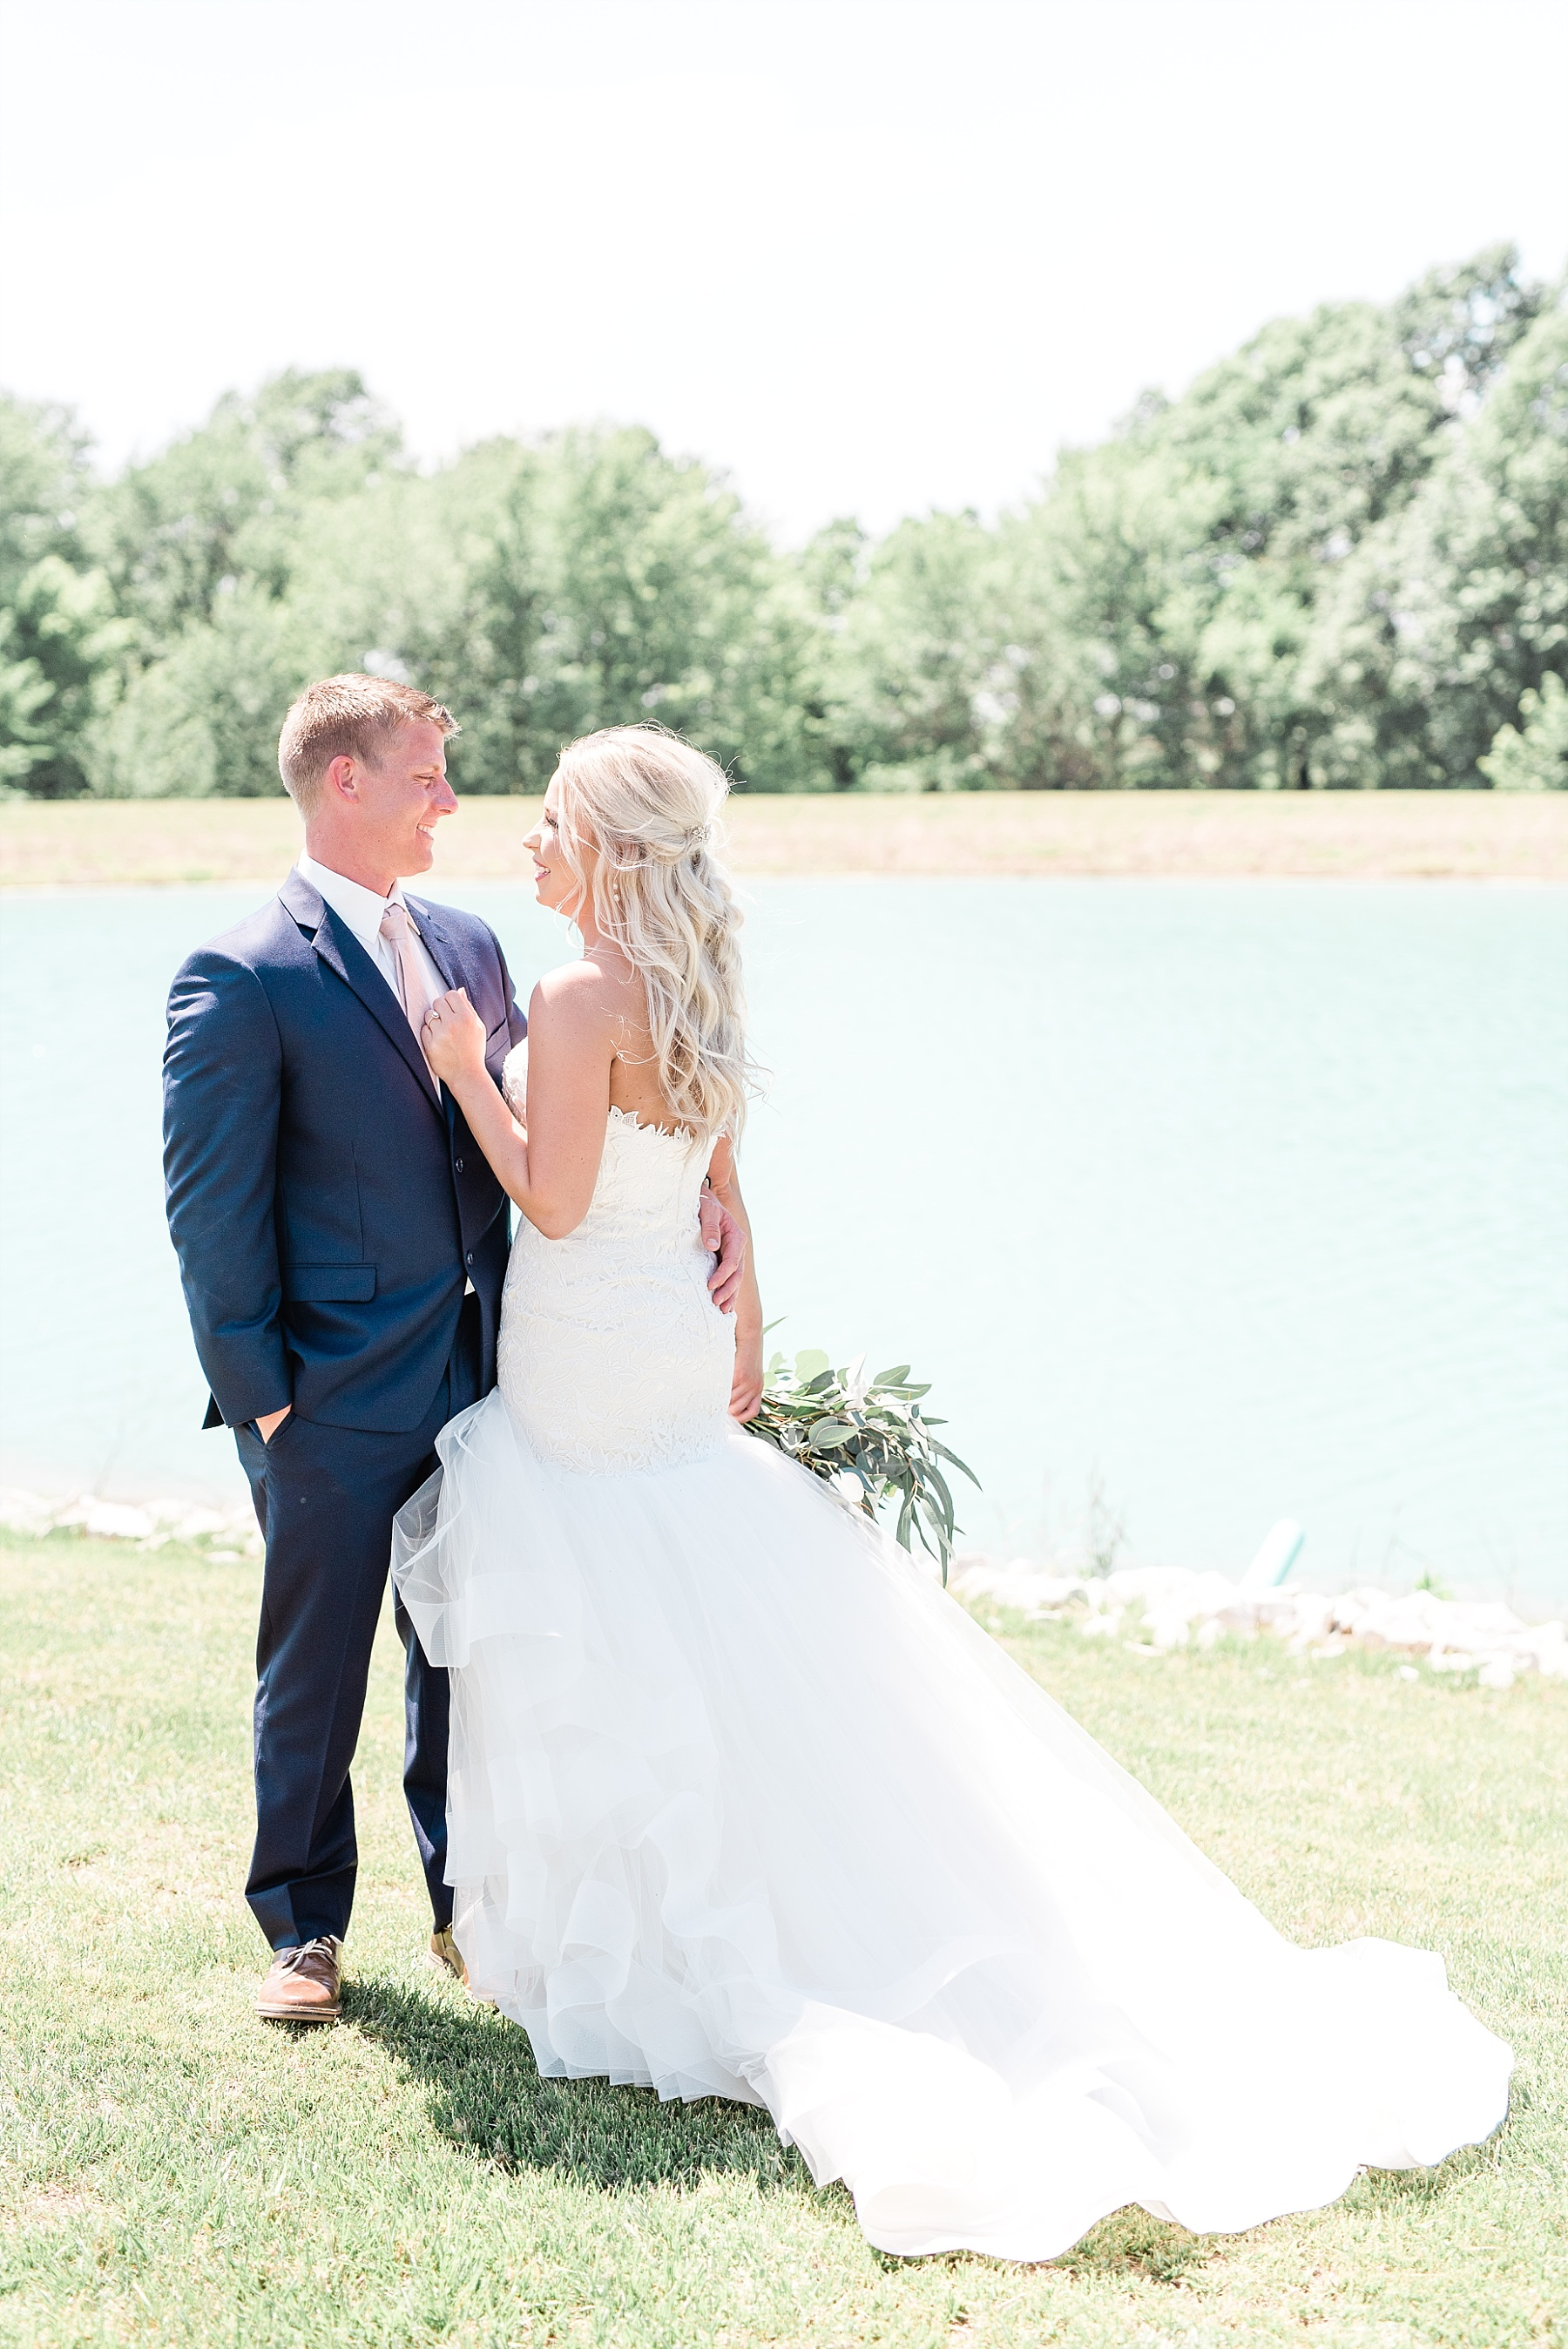 Stunning Heartfelt, Elegant, Fine Art, Chic, Outdoor Spring Wedding with Blush, Cream, Greenery, Rose Gold, and Sequins at Emerson Fields Venue by Kelsi Kliethermes Photography_0025.jpg